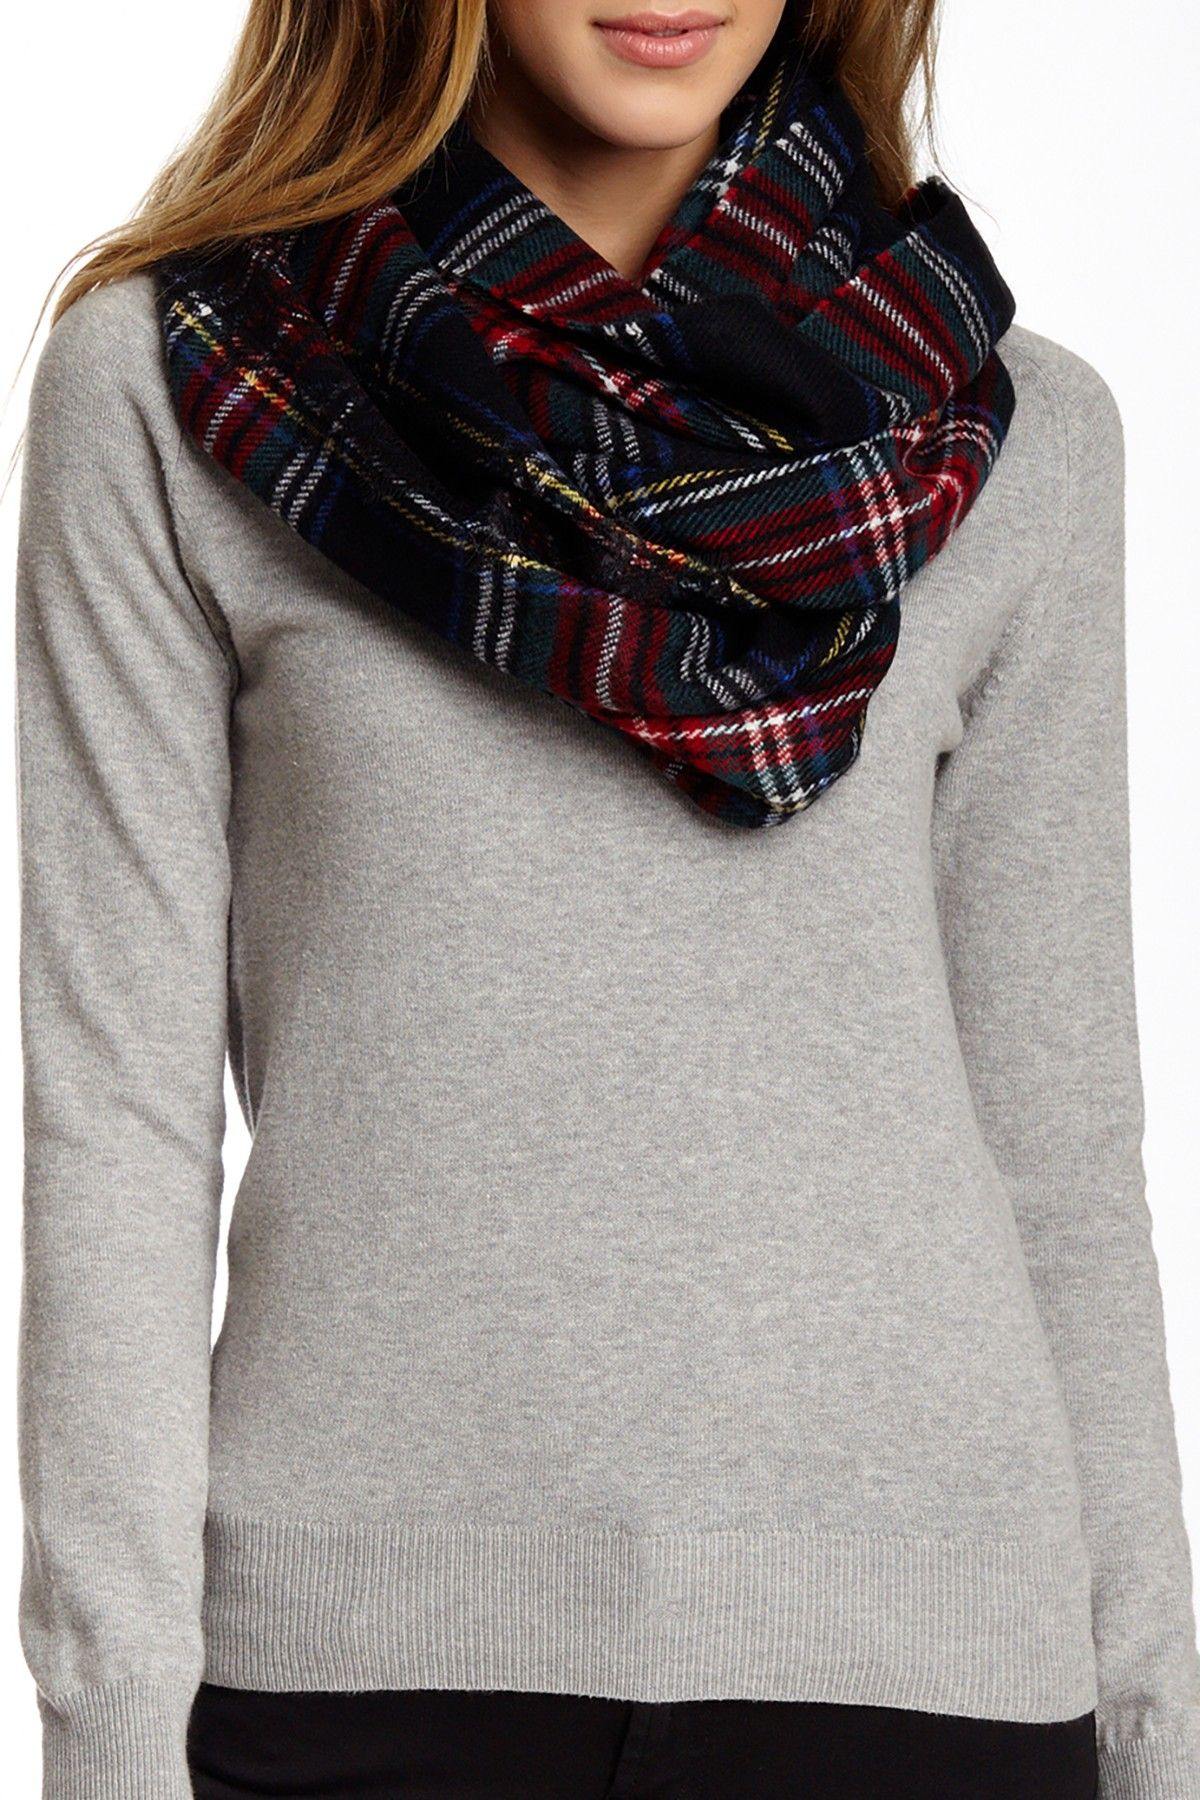 aa4c998a5 I'm obsessed with this Betsey Johnson Plaid Infinity Scarf | Nordstrom Rack  Sponsored by Nordstrom Rack.